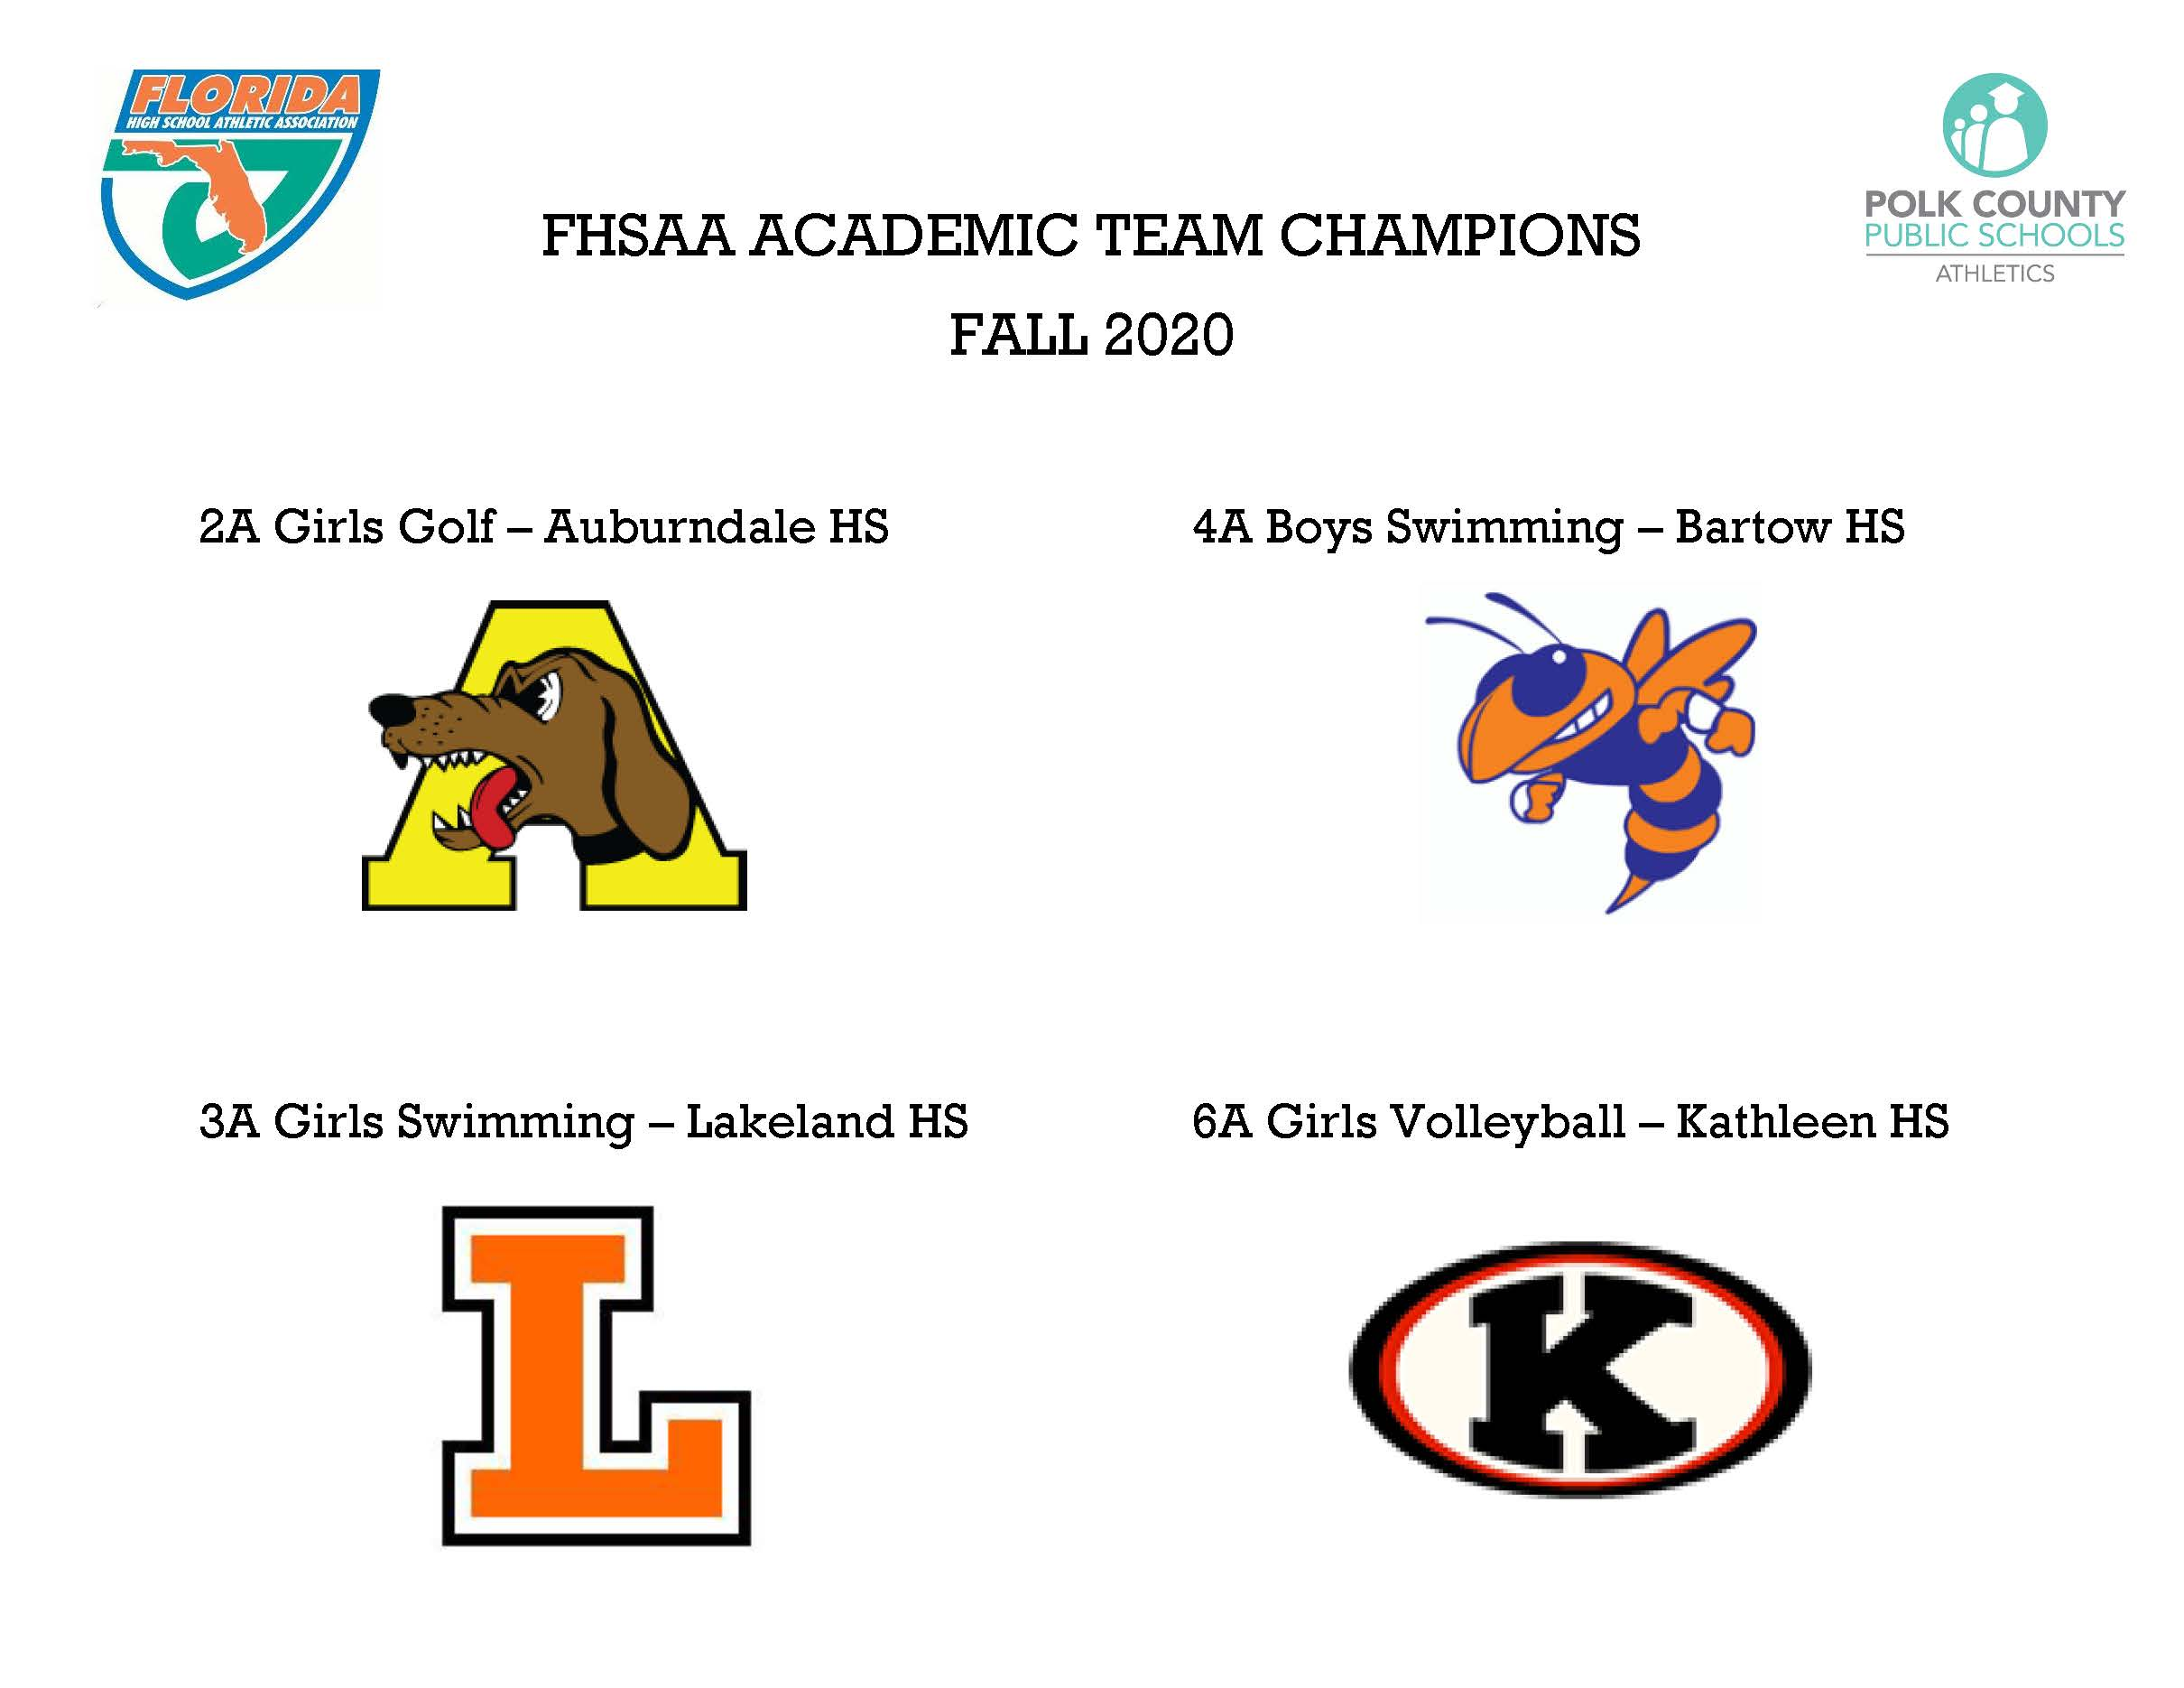 List of PCPS Academic Team Champions for fall 2020